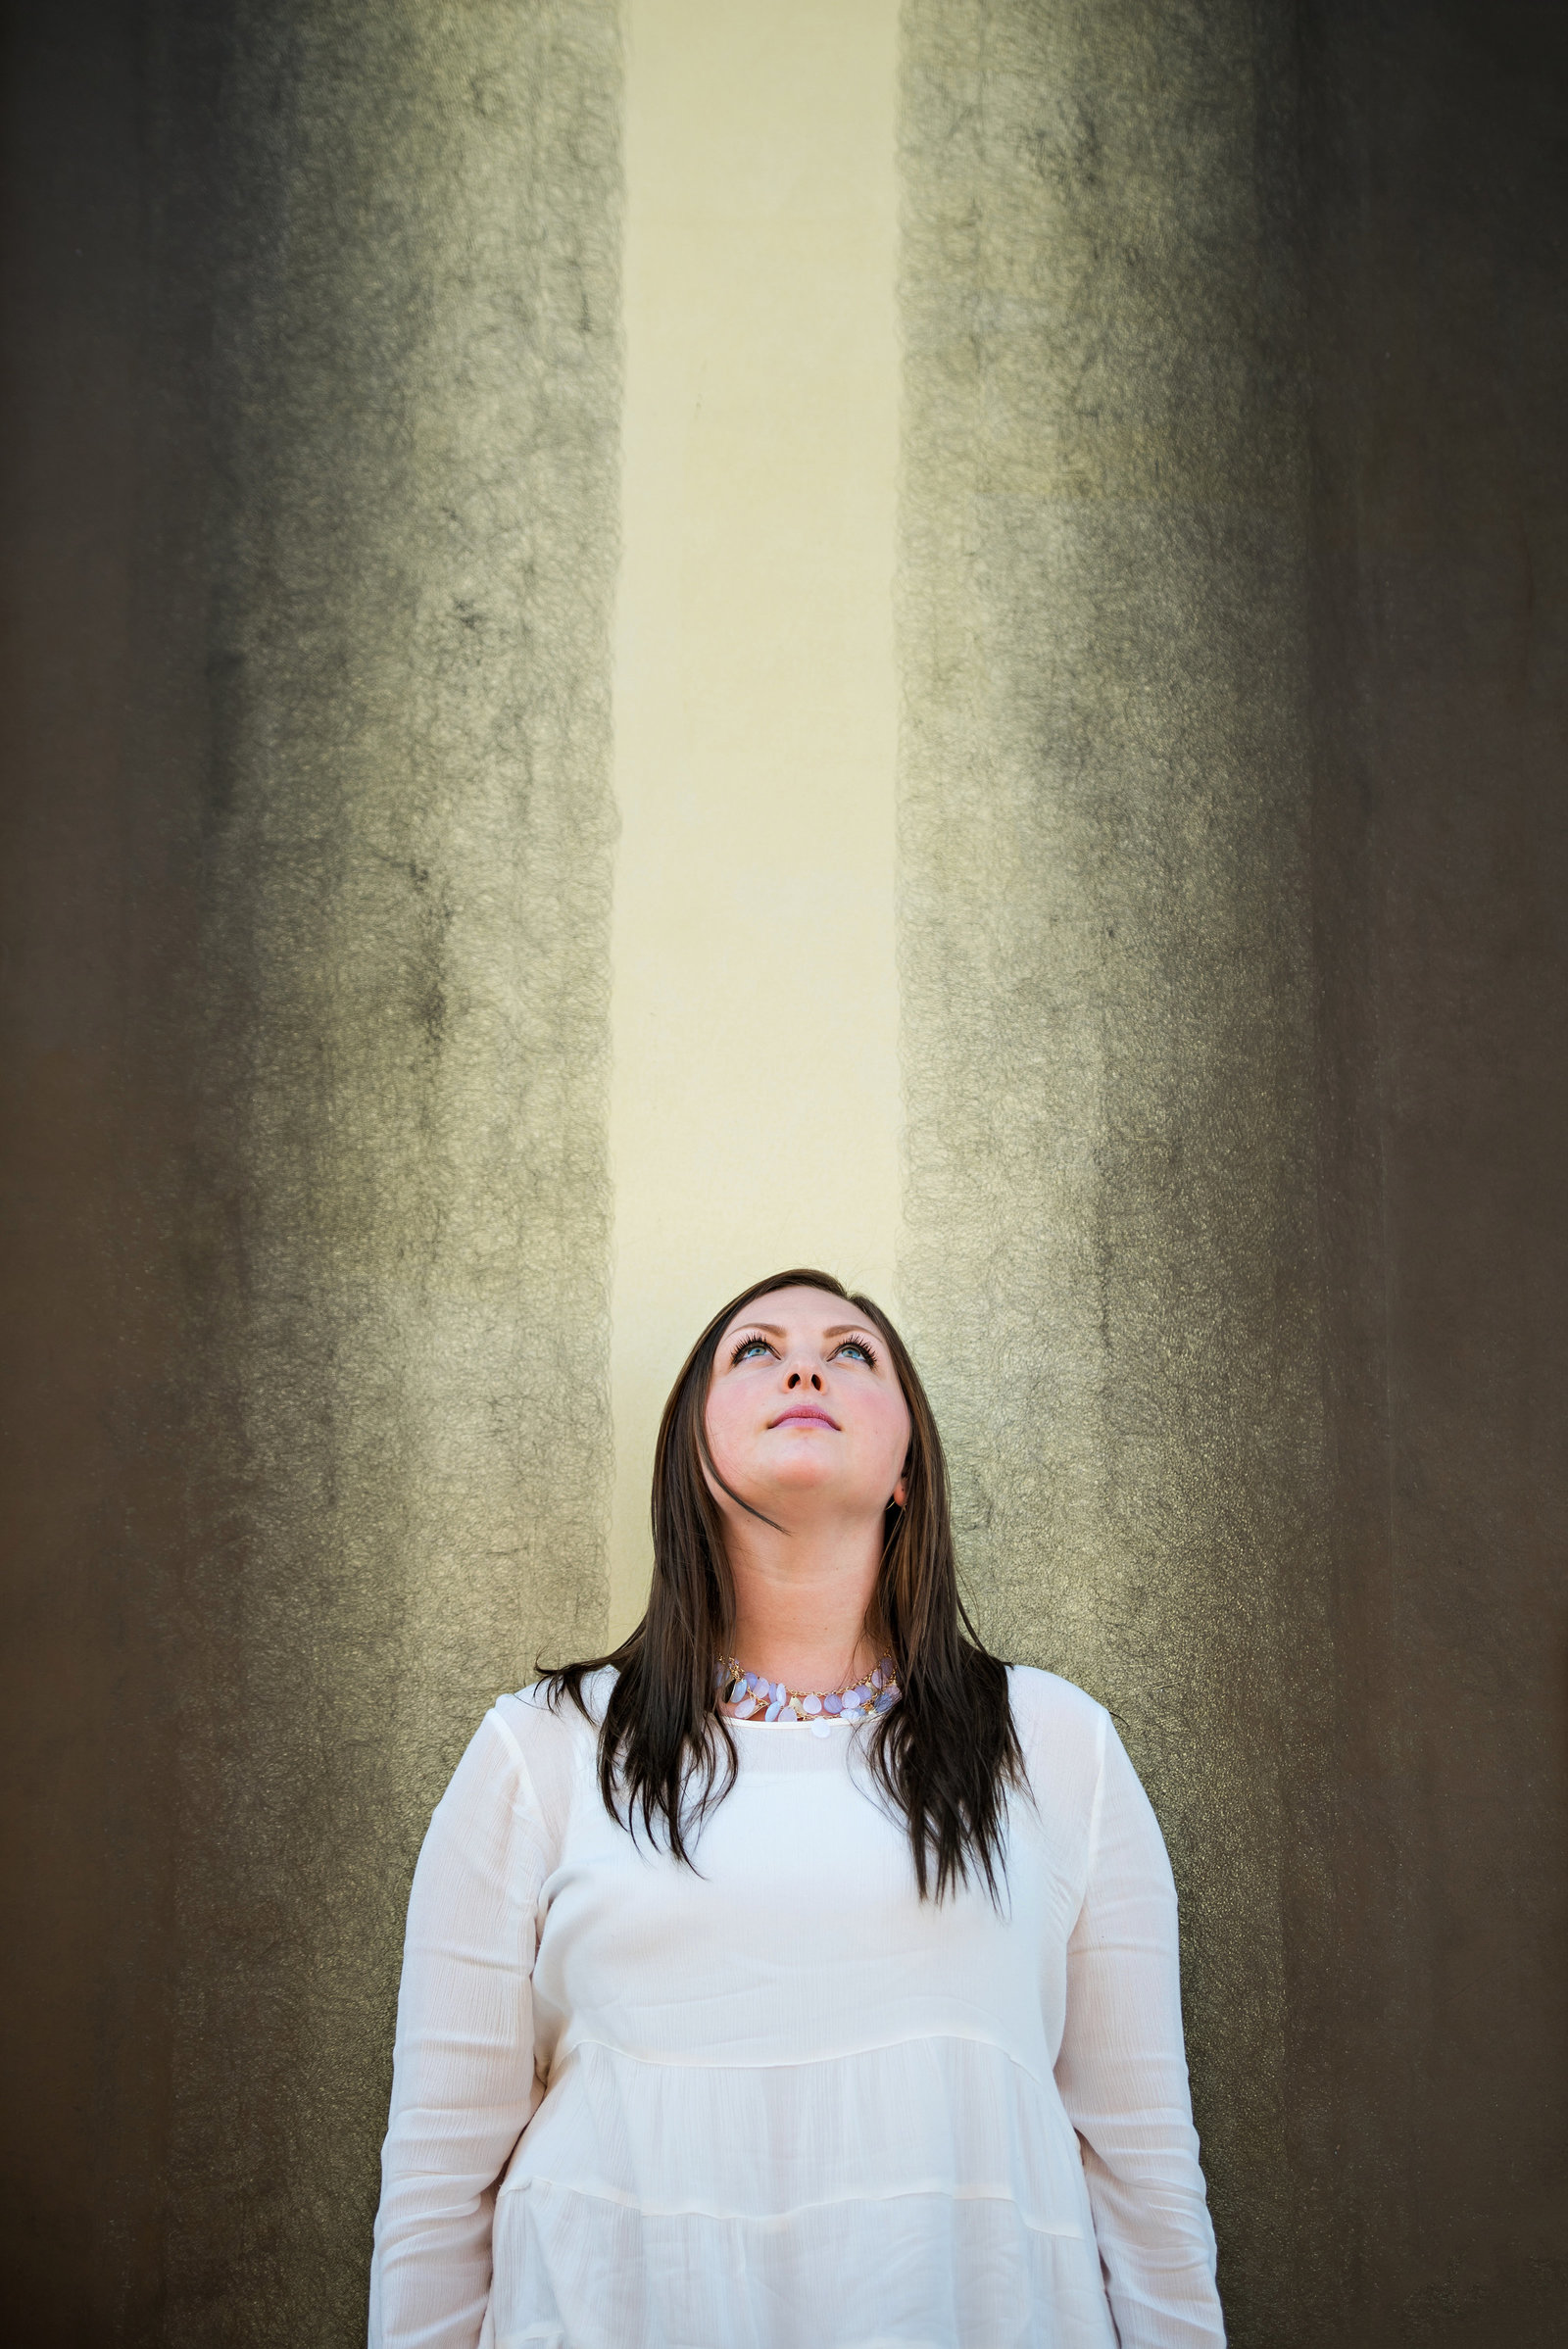 A woman in front of wall art looks up to the sky.